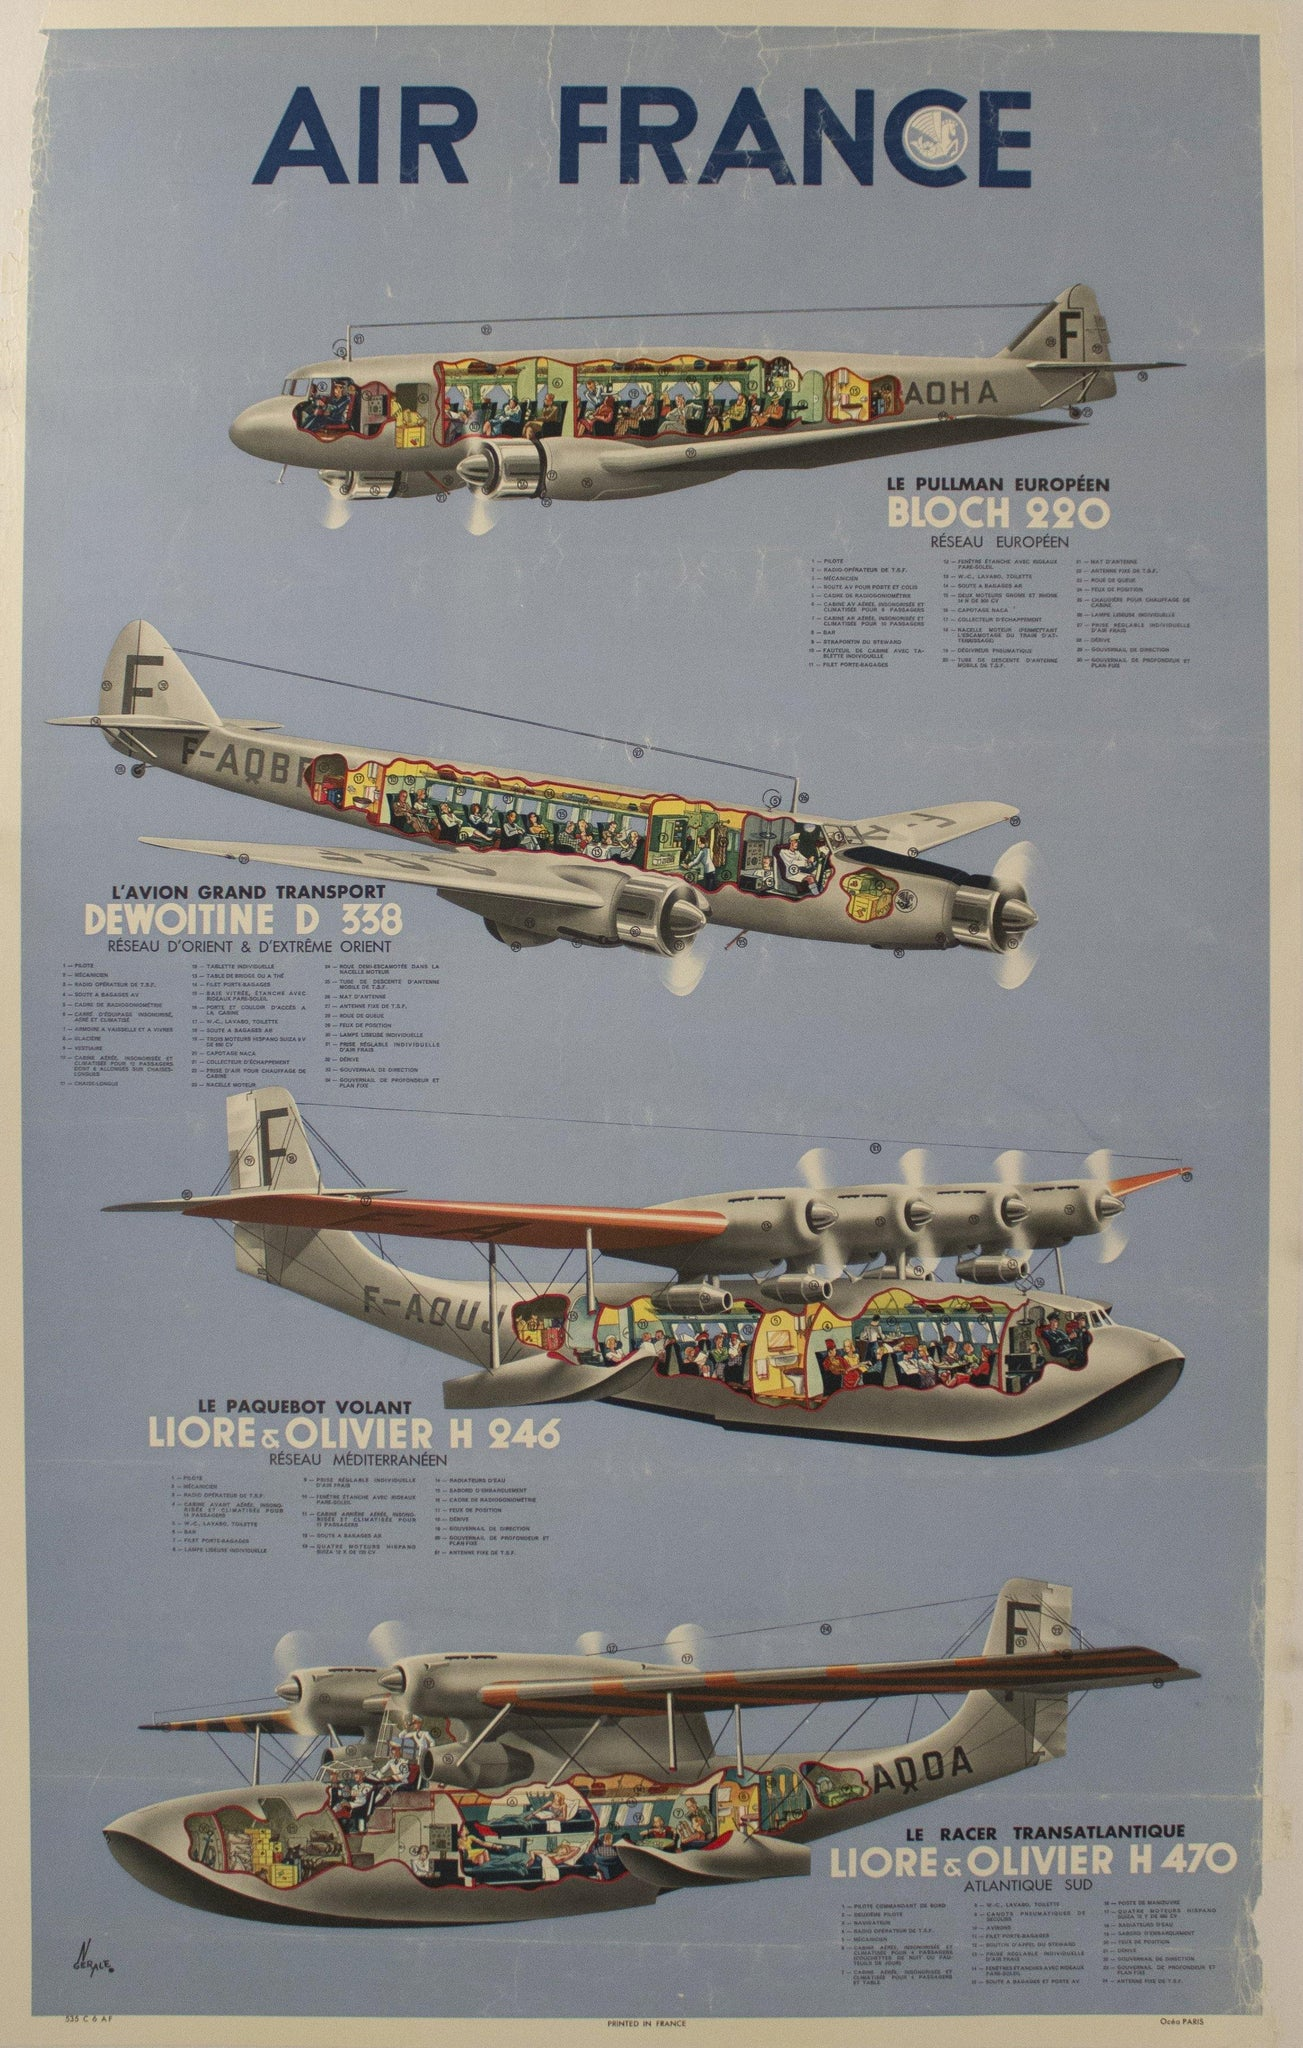 1938 Air France Airplane Diagram by Gerale